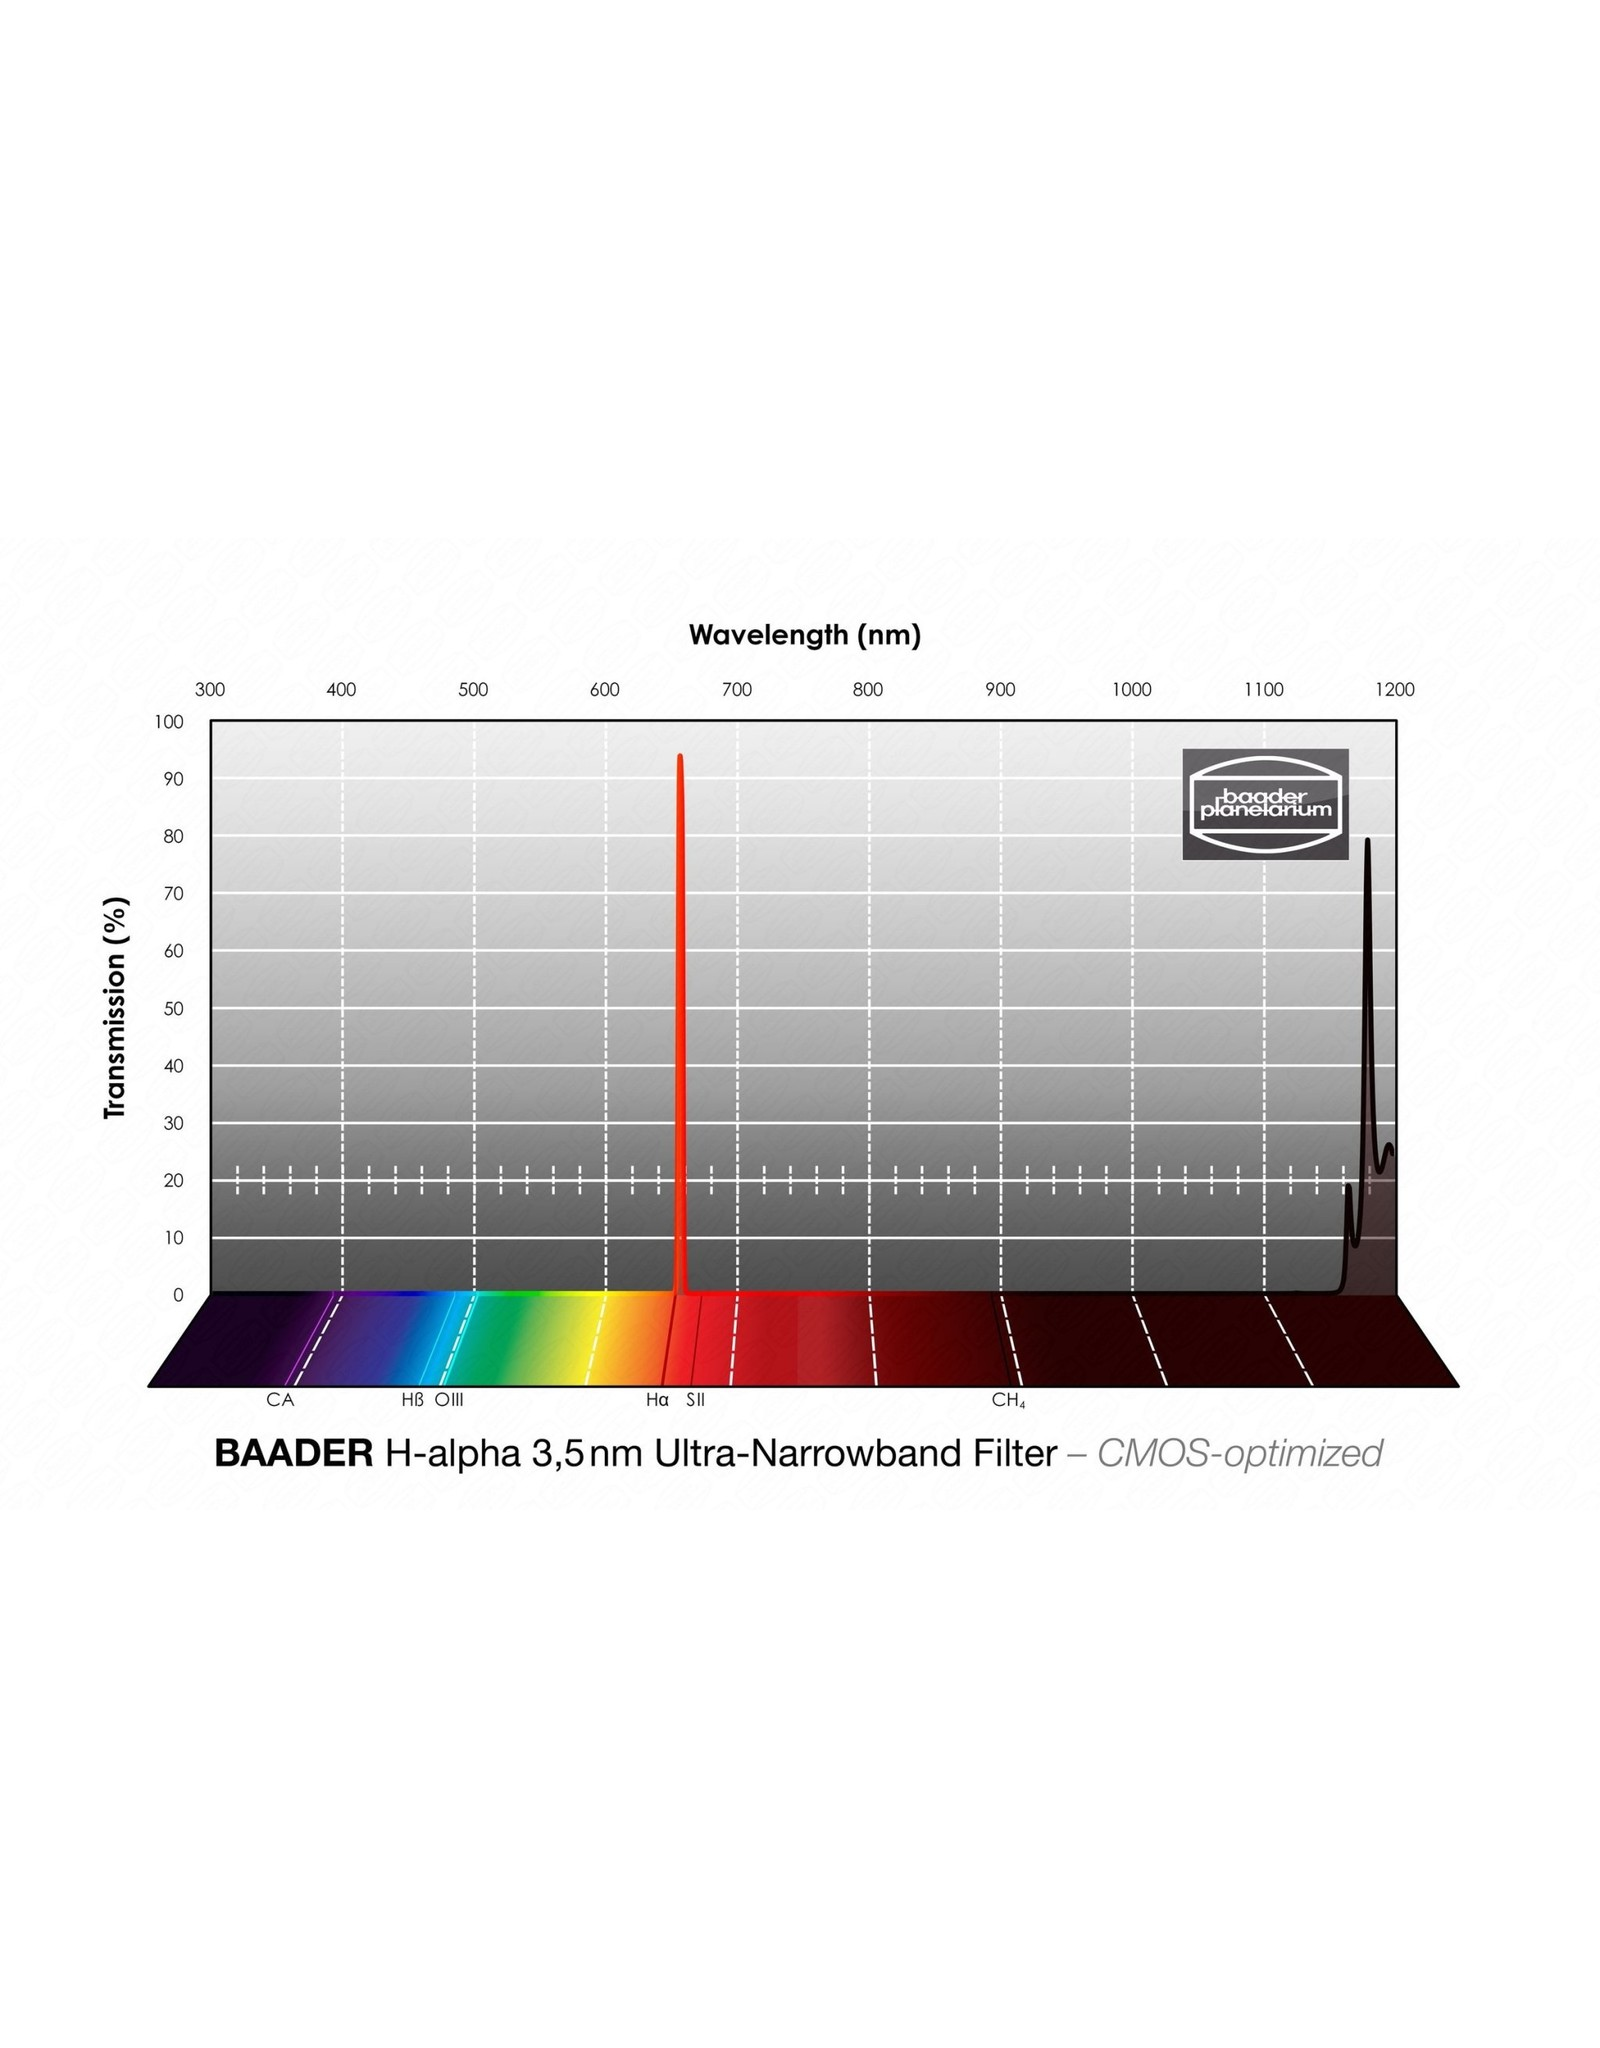 Baader Planetarium Baader 3.5nm Ultra-Narrowband H-Alpha Filters – CMOS-optimized (Specify Size)